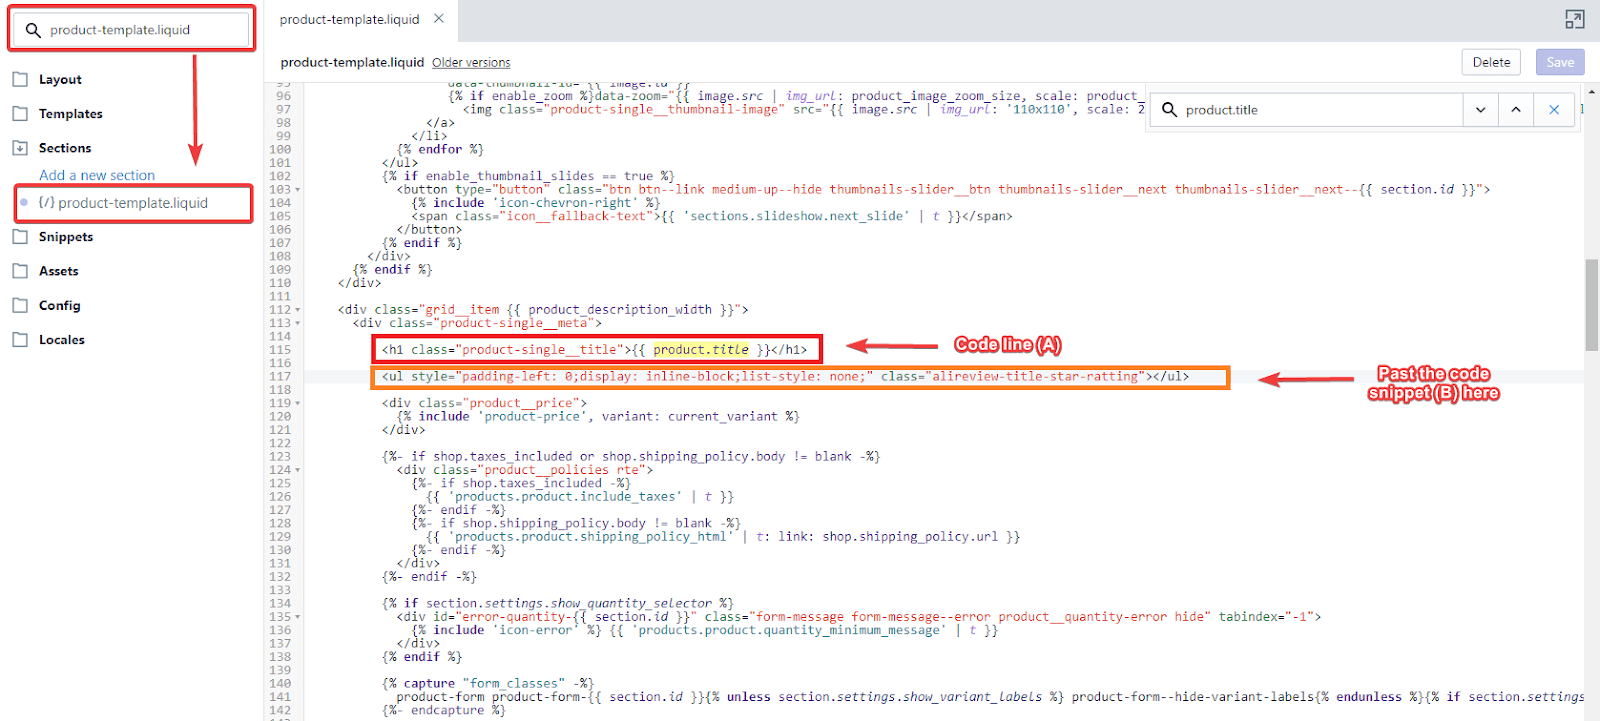 Place To Add Code In product.liquid File To Show Rating Star In The Product Page